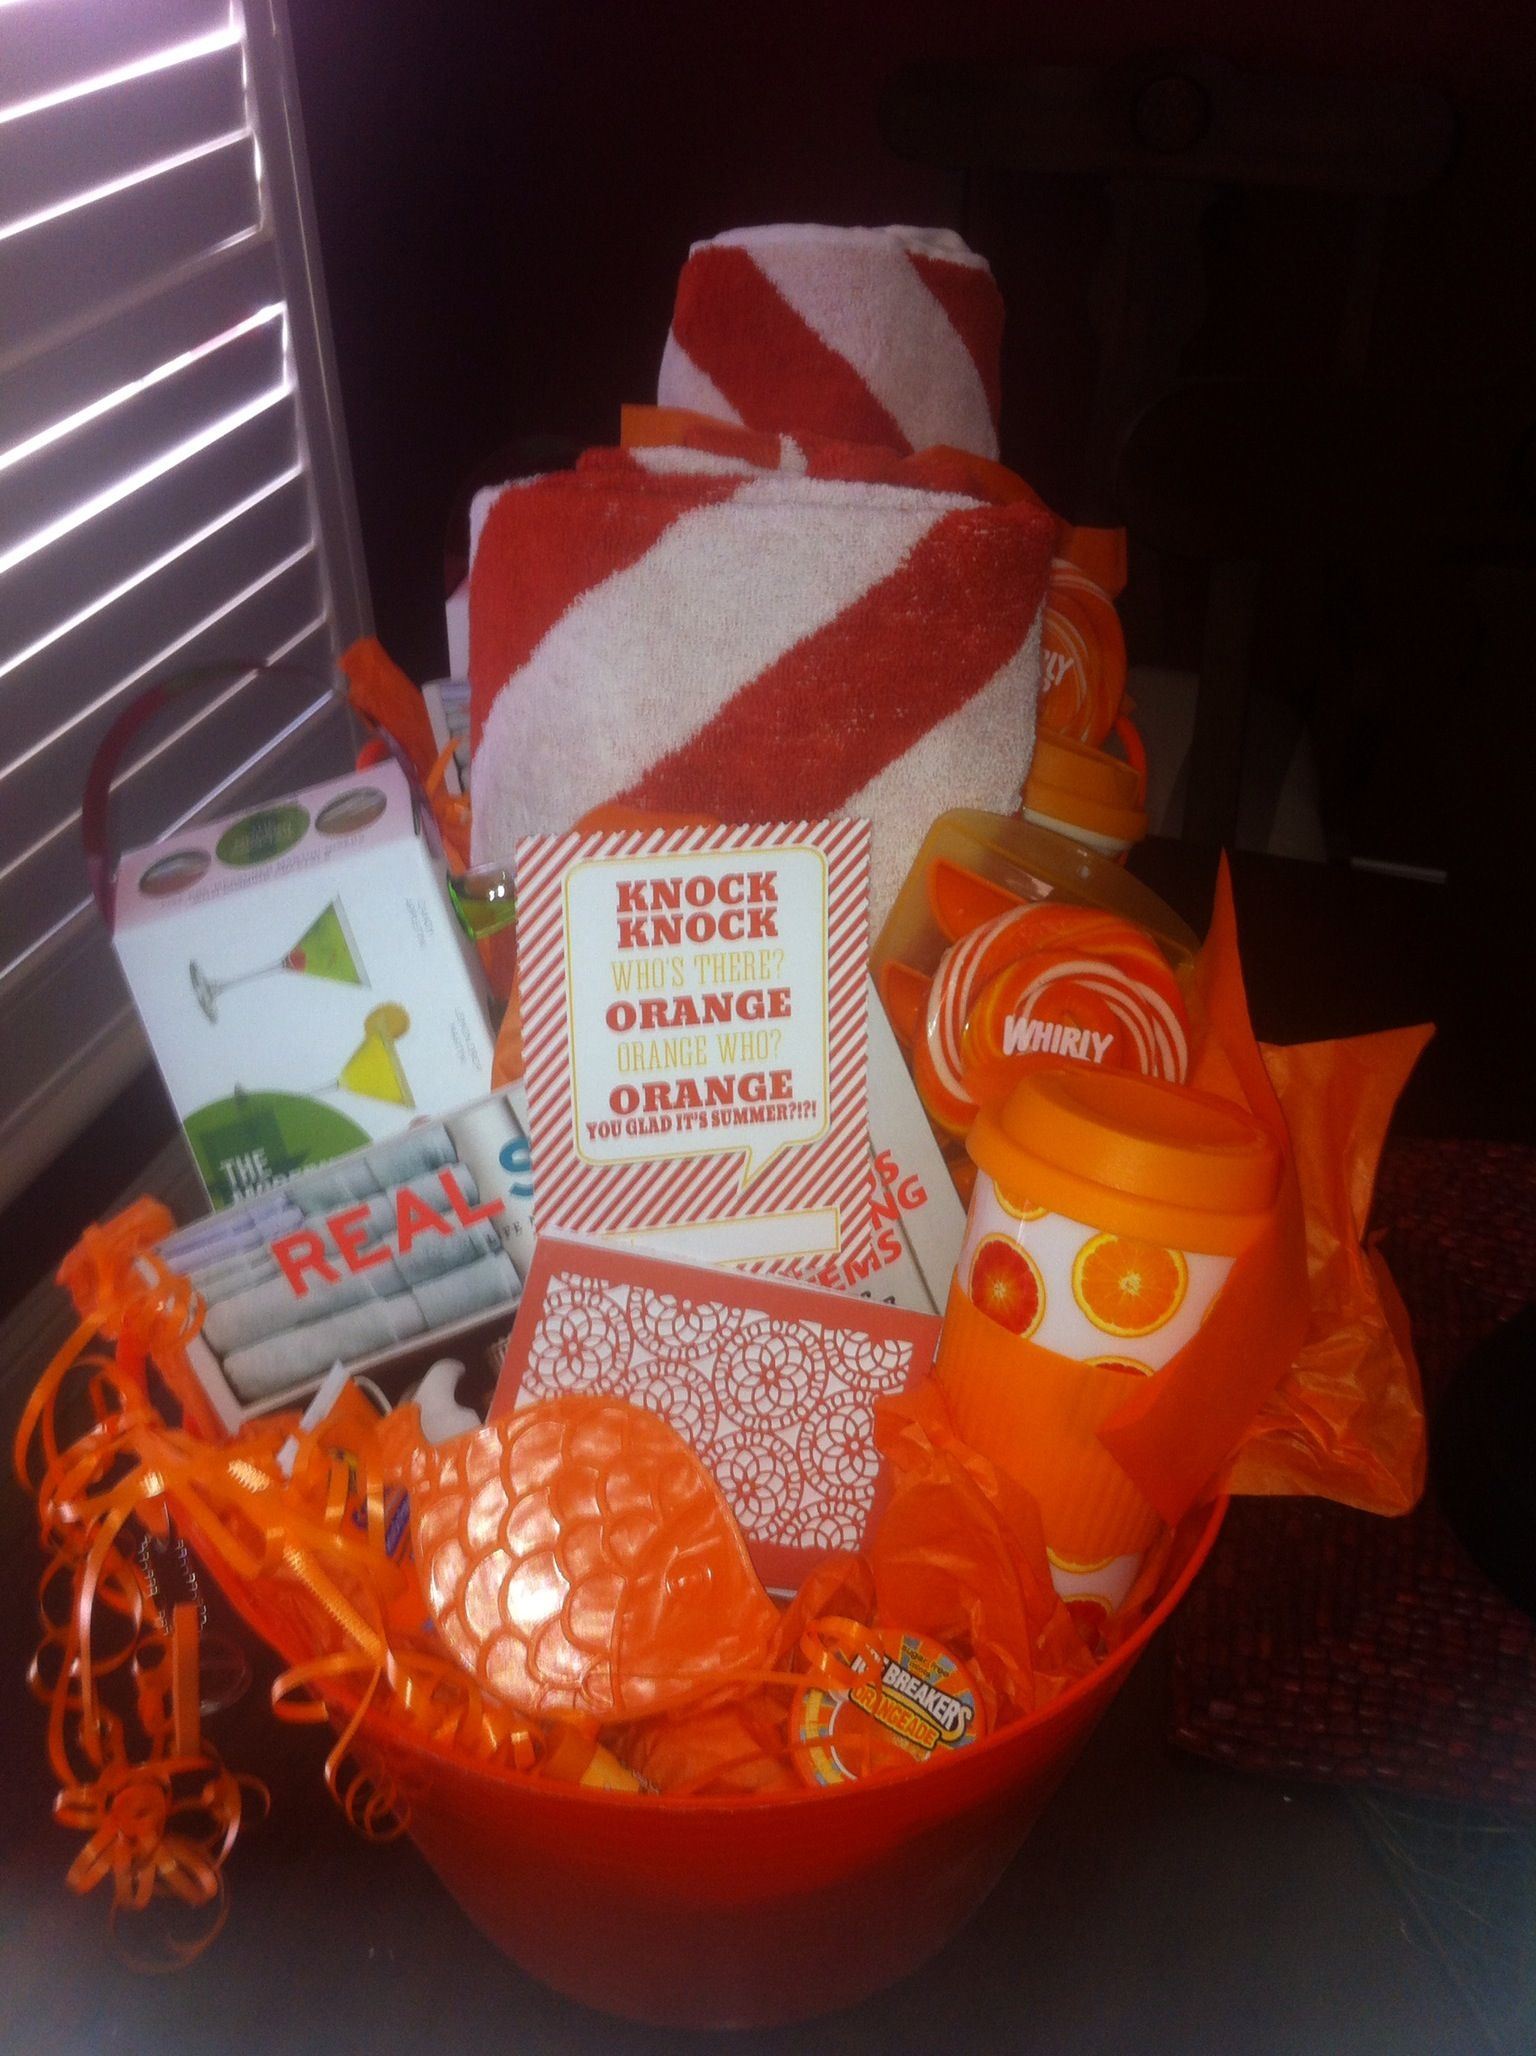 End of the year teacher gift: Knock Knock who's there? Orange you glad it's summer!